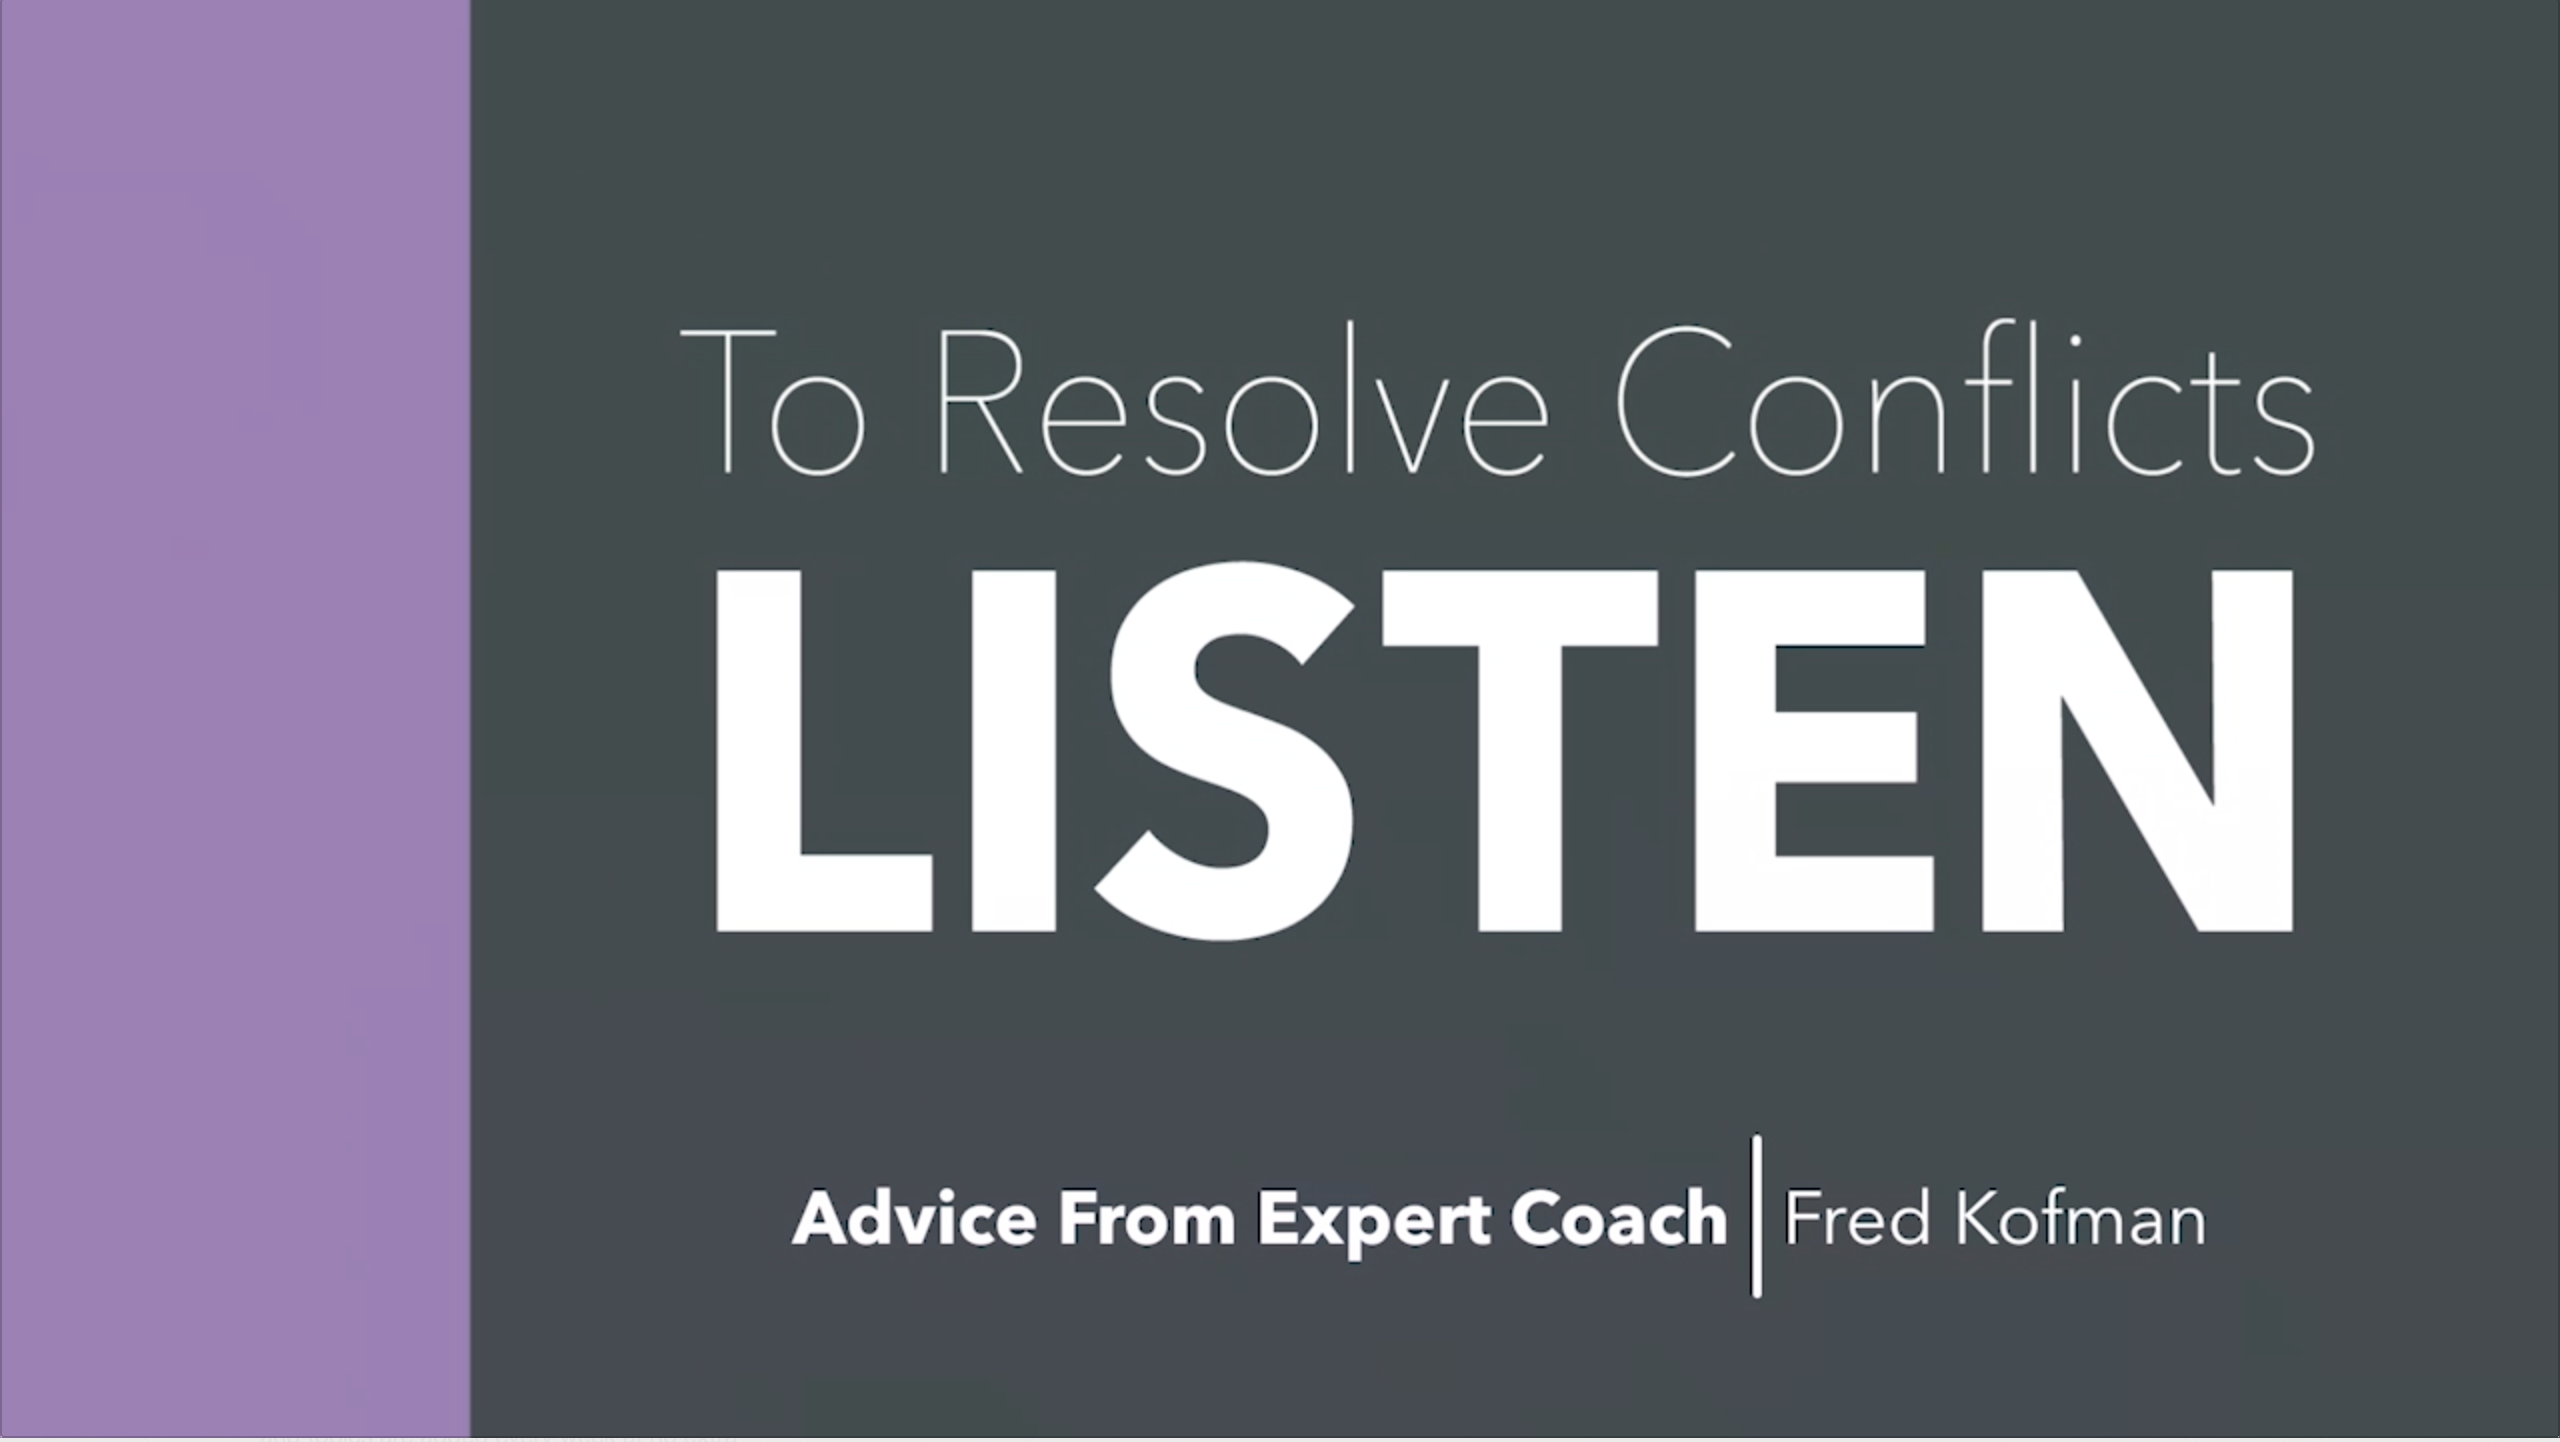 Fred Kofman on Resolving Conflict: Listen